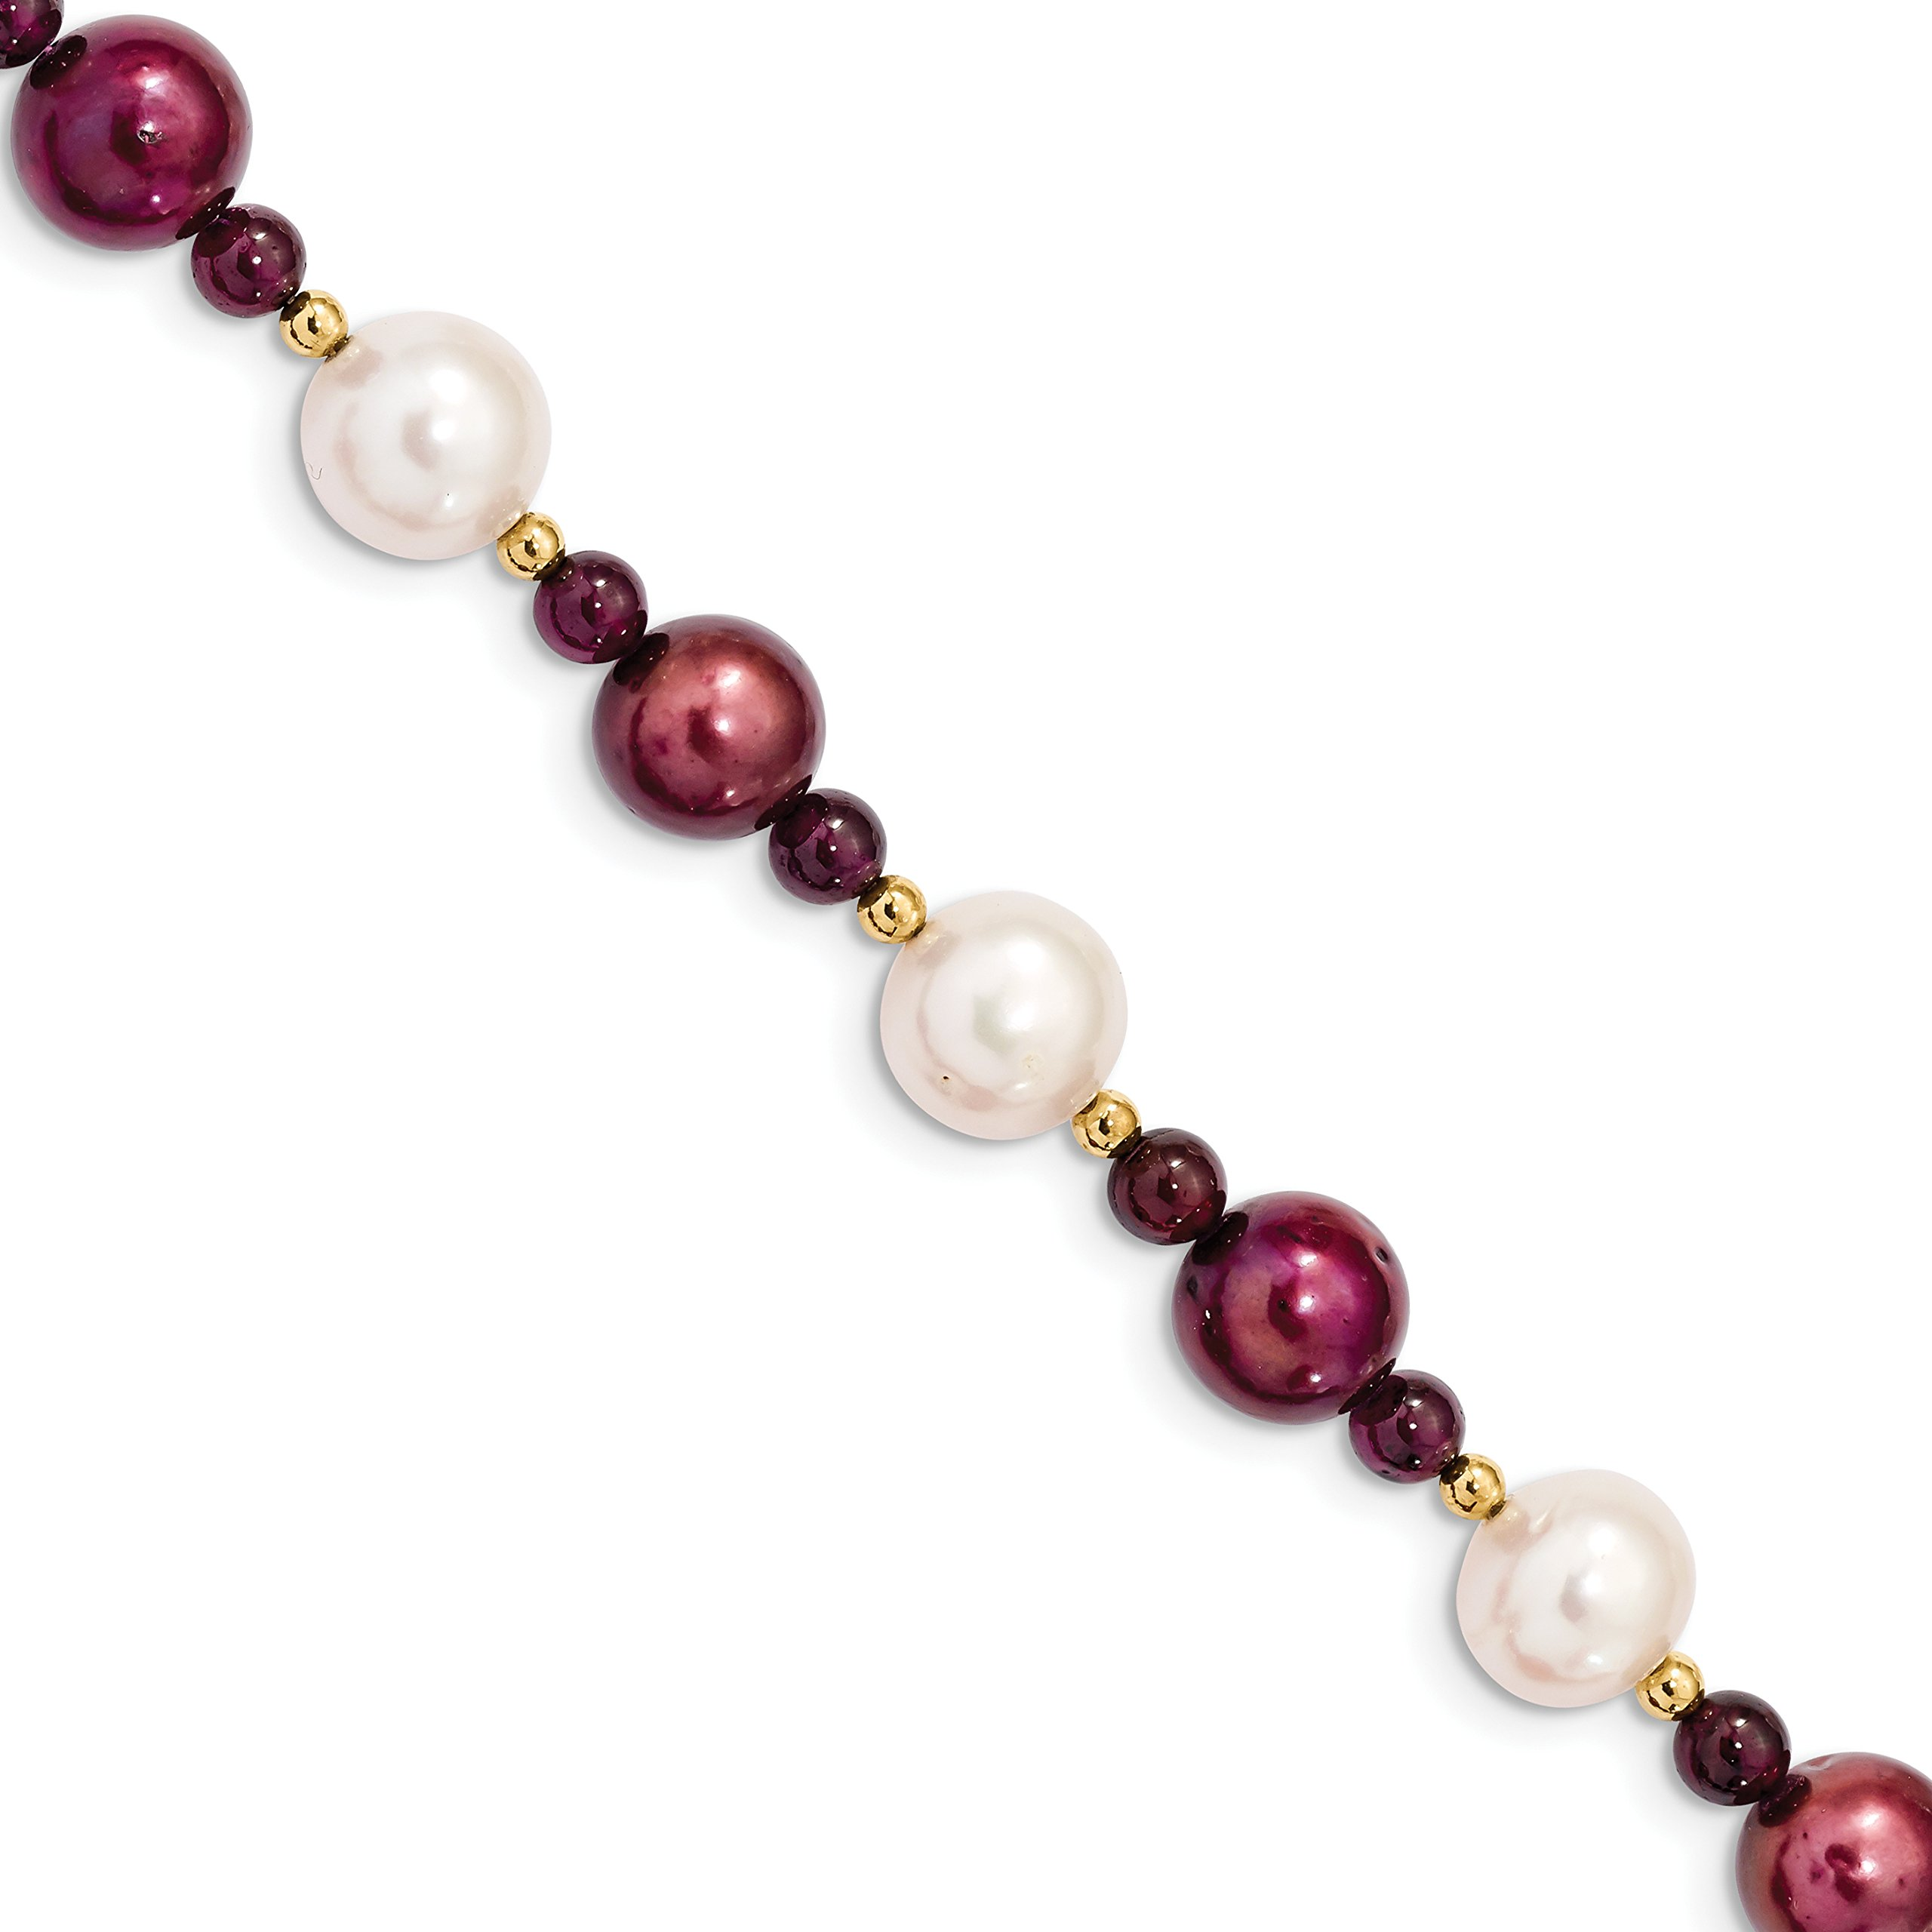 ICE CARATS 14k Yellow Gold Red Garnet 10 11 White 10mm Cranberry Freshwater Cultured Pearl Bracelet 7.5 Inch Gemstone Fine Jewelry Gift Set For Women Heart